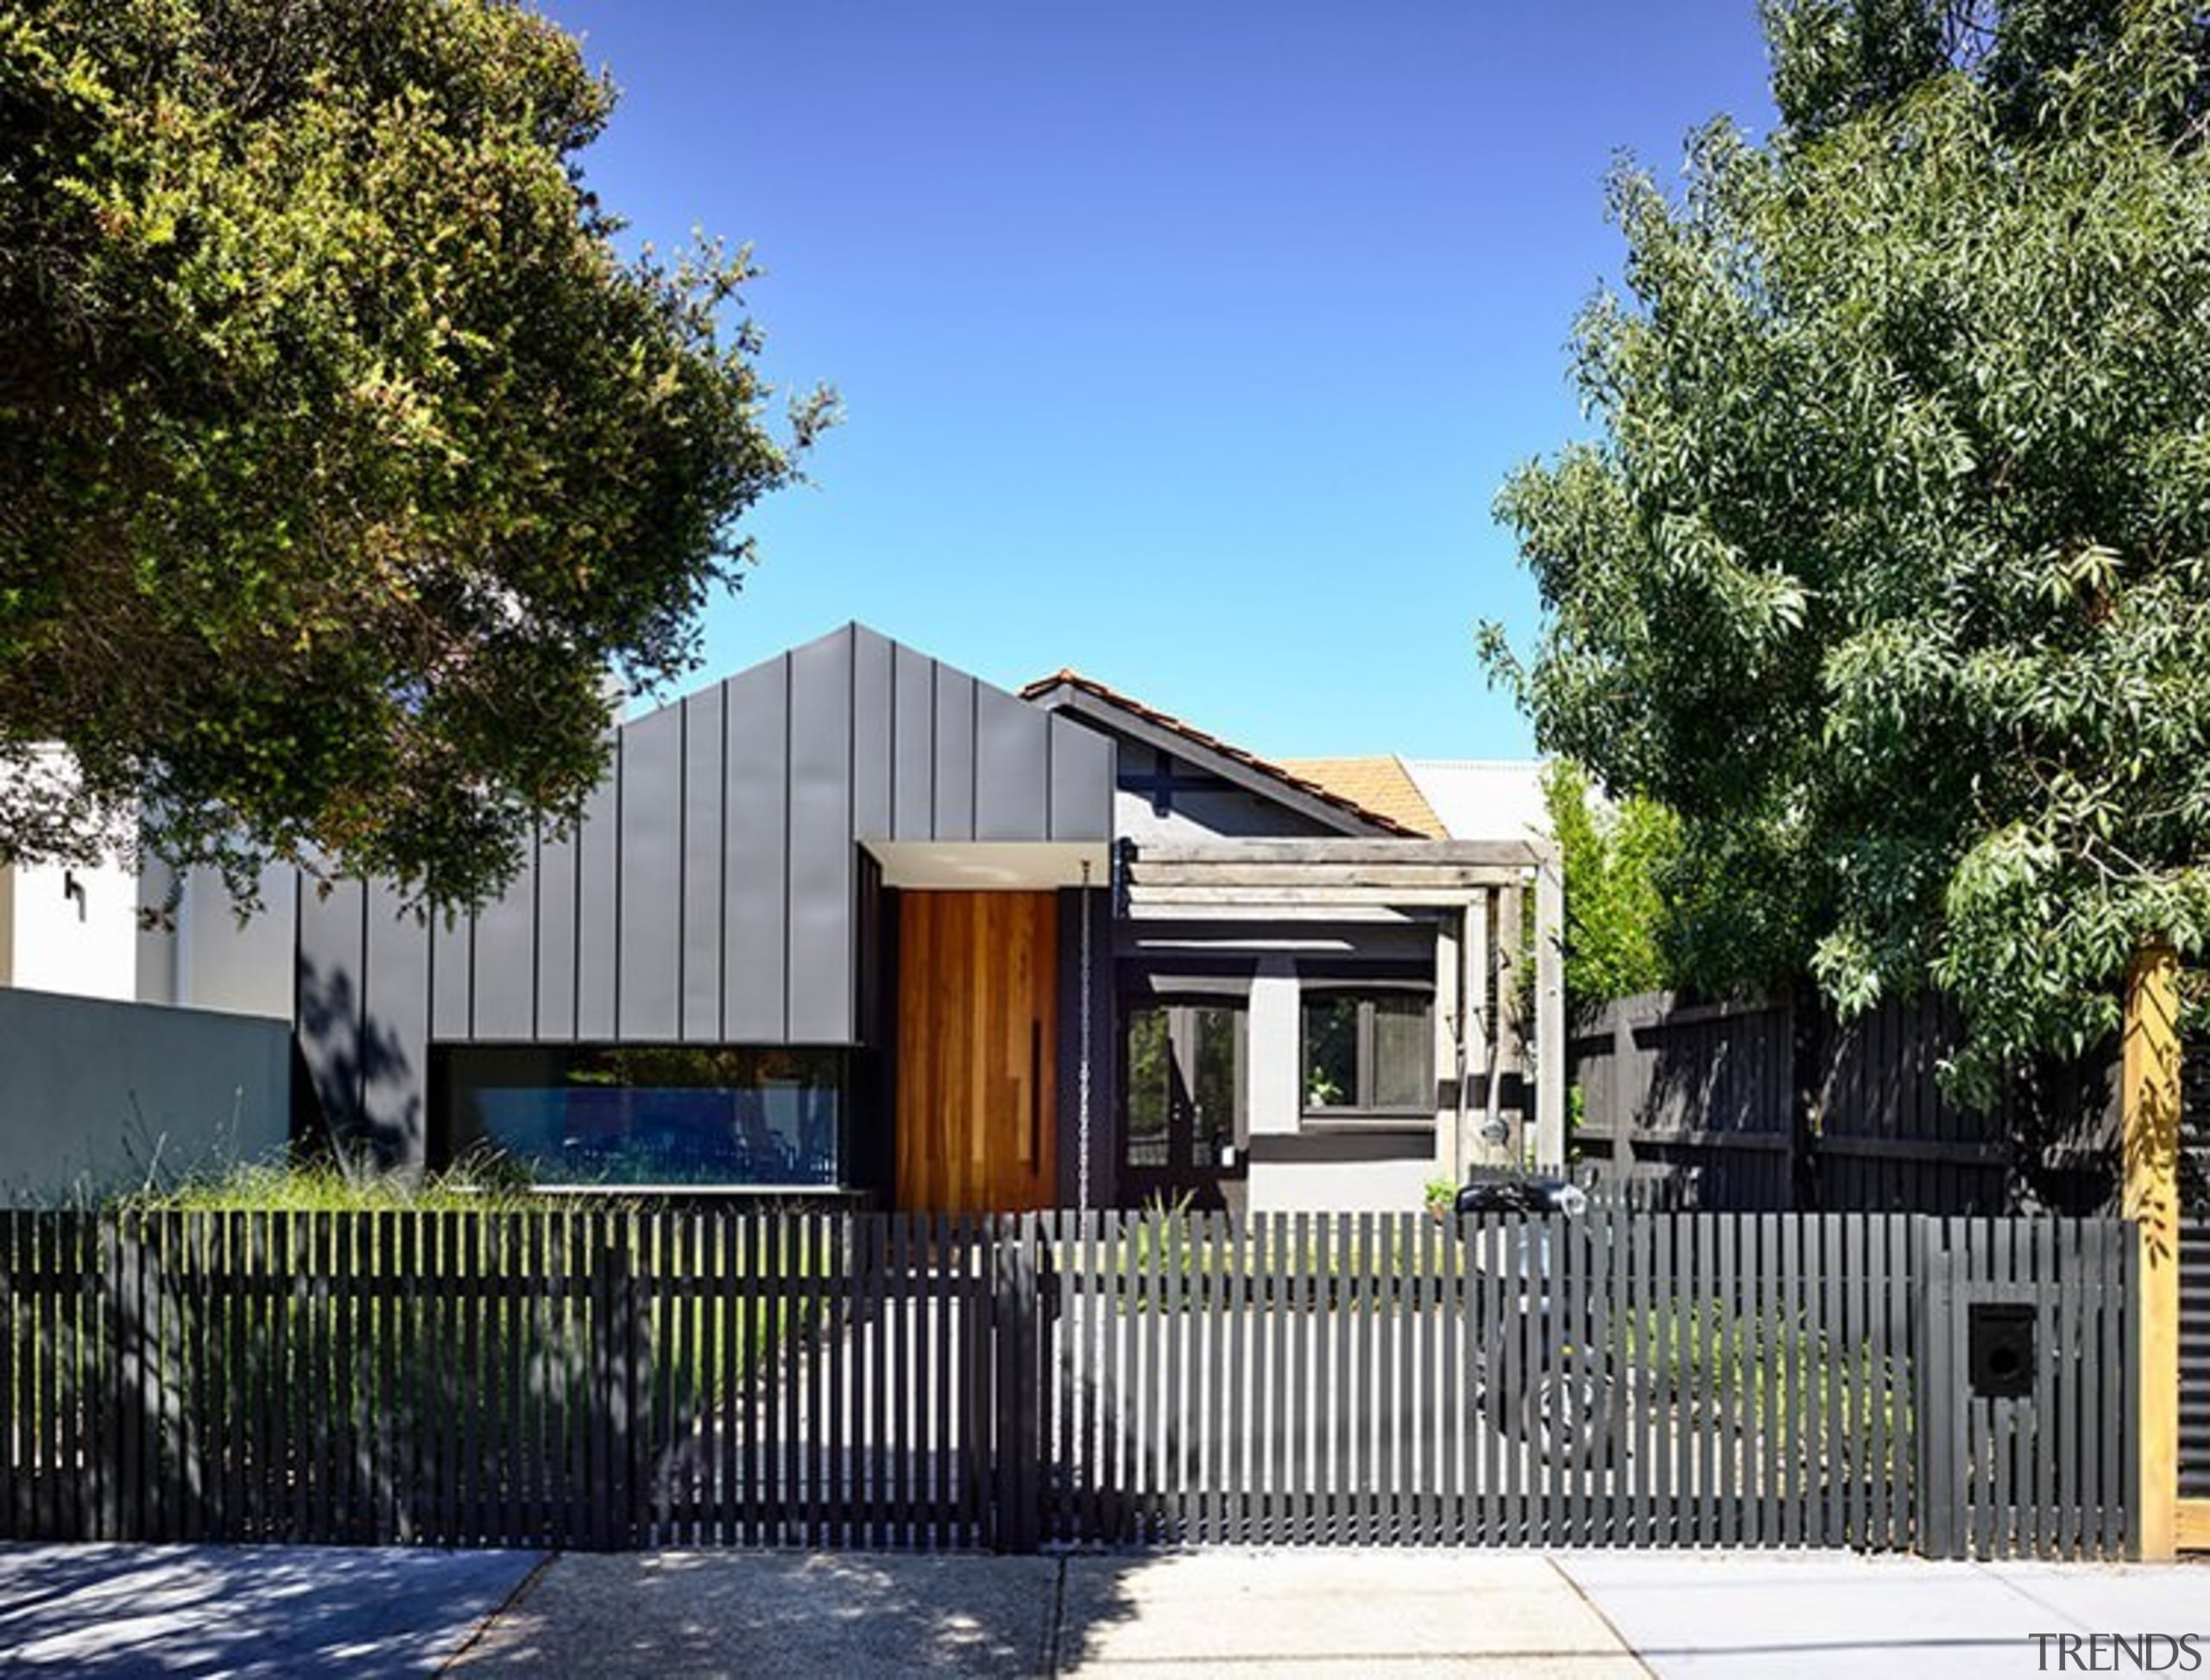 The home certainly has an interesting street facade architecture, building, cottage, elevation, estate, facade, fence, home, house, neighbourhood, property, real estate, residential area, suburb